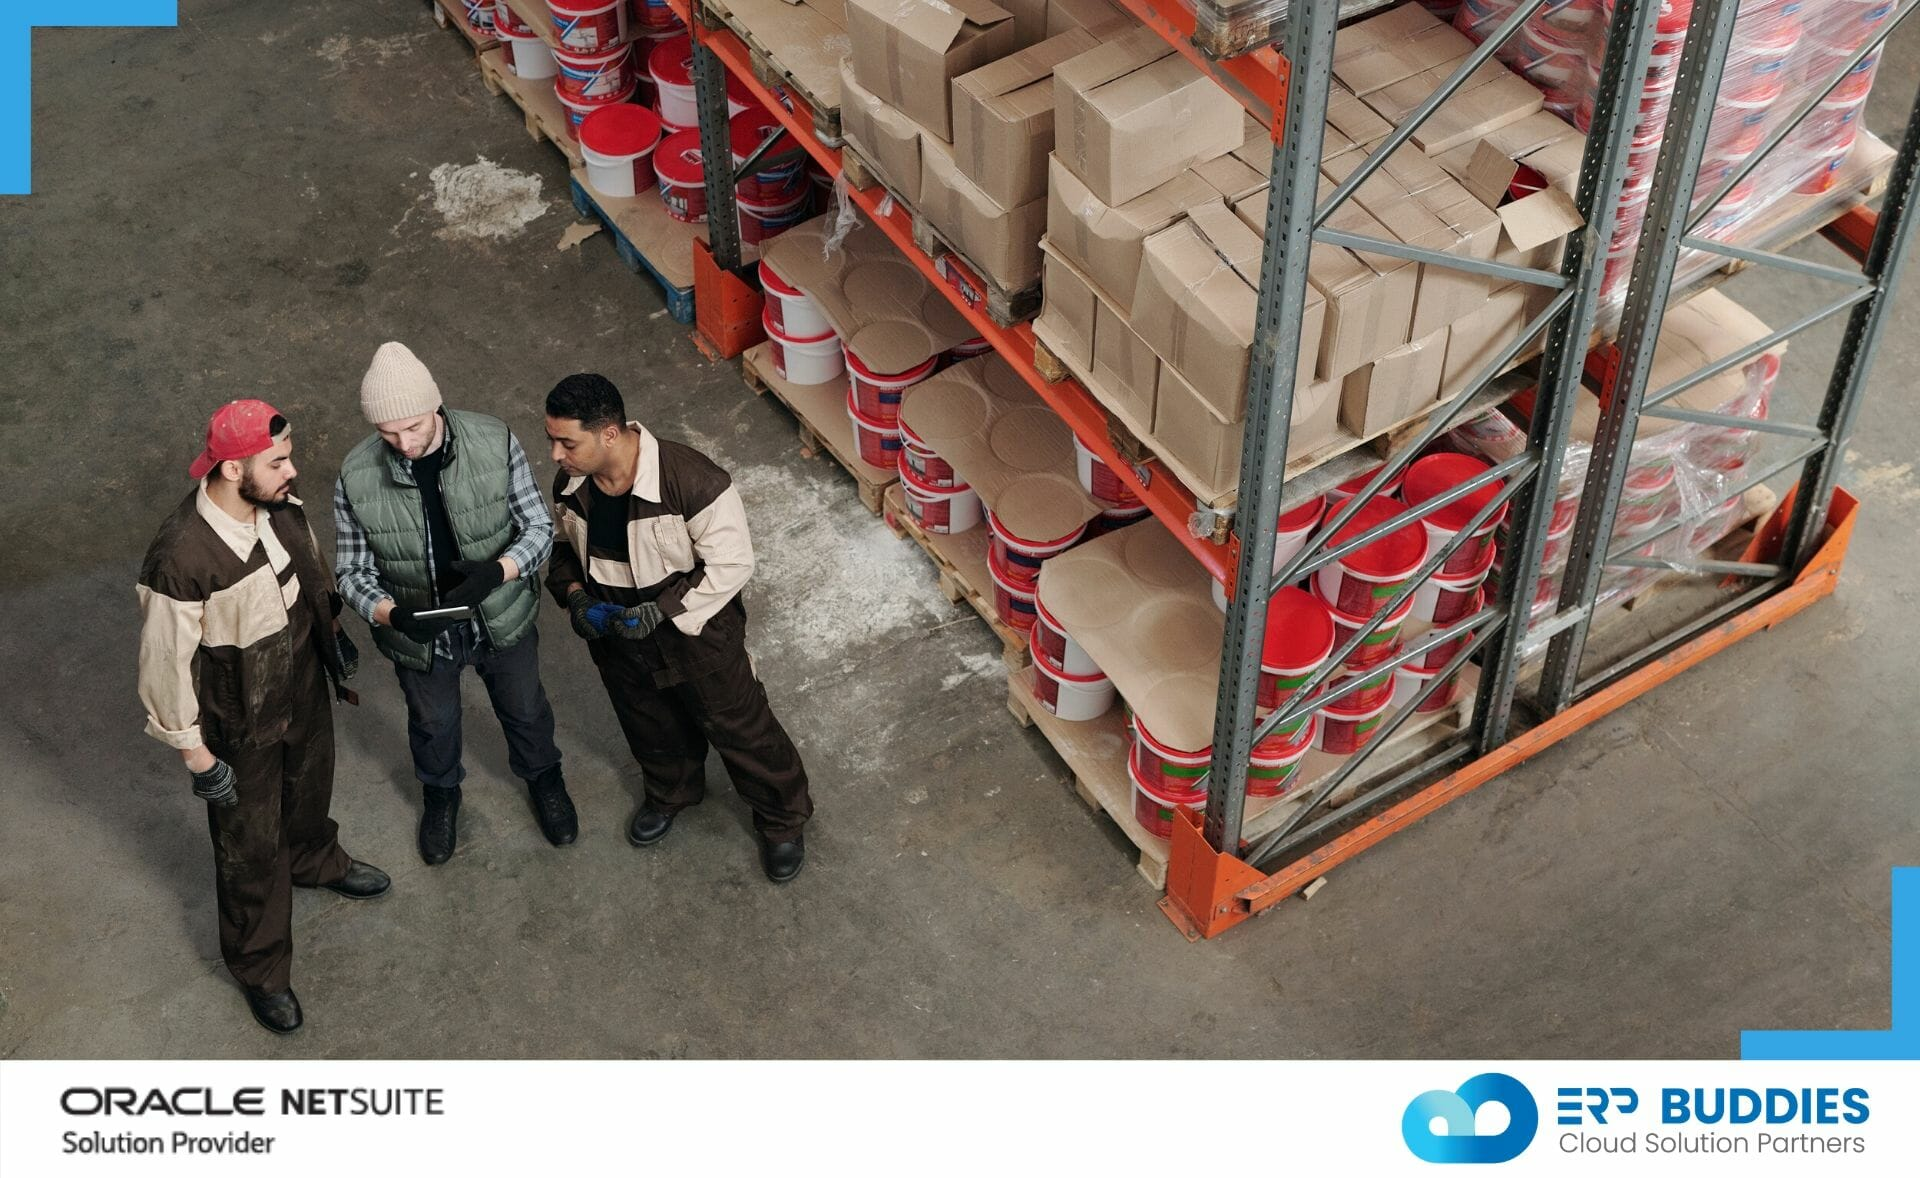 Wholesale Distribution business will benefit with NetSuite ERP